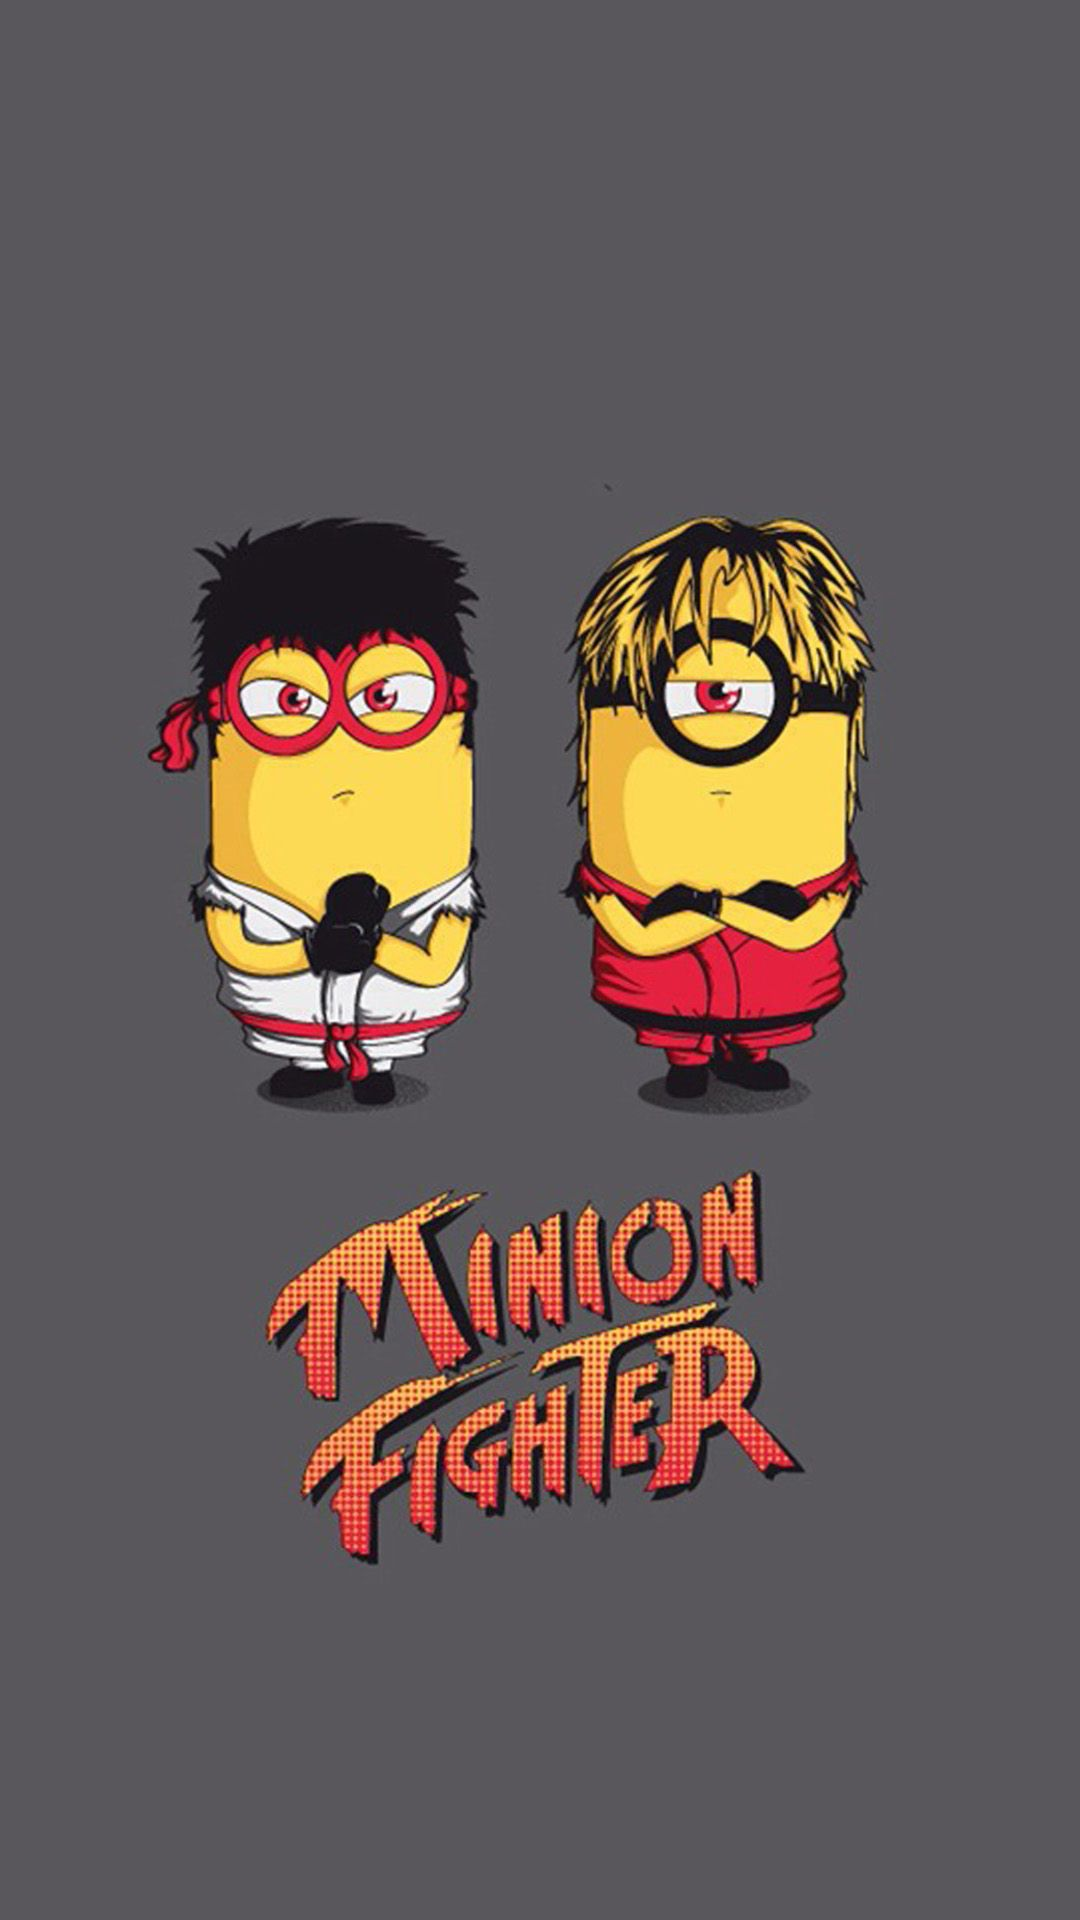 funny minion fighter hd wallpaper iphone 6 plus | wallpaper